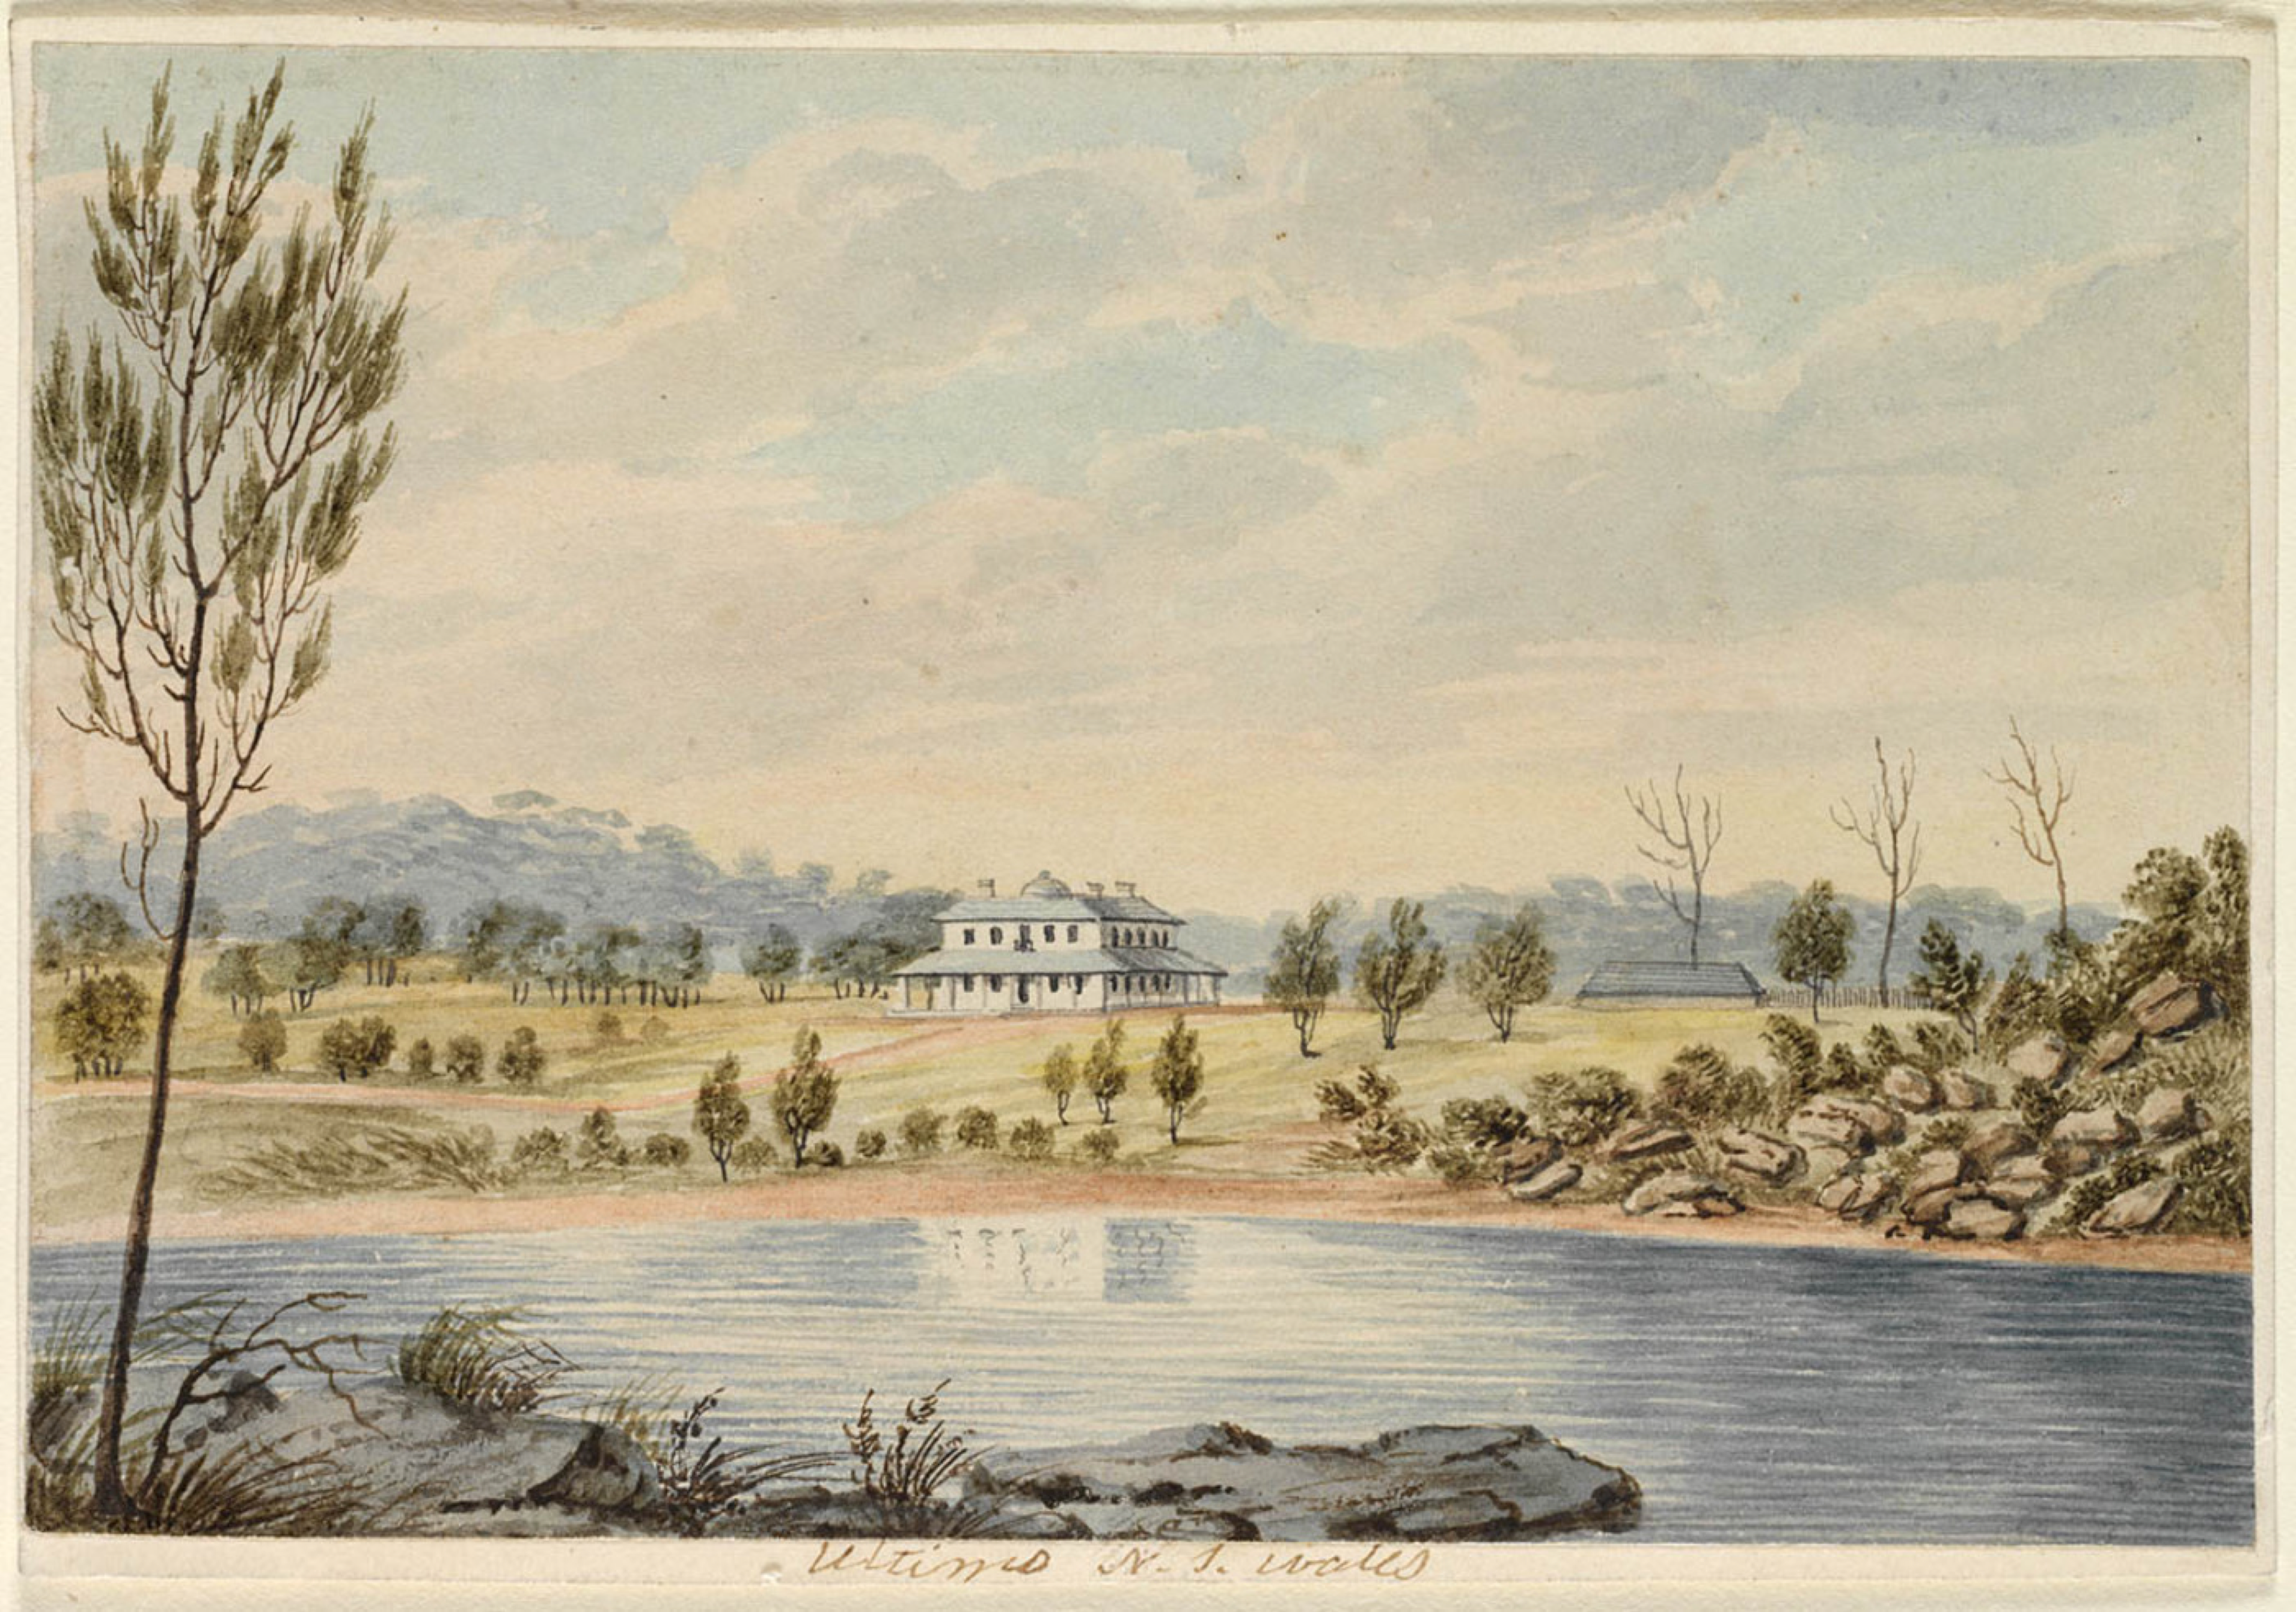 Joseph Lycett, East View of Ultimo, Sydney, property of Surgeon John Harris, Esquire, 1820, St. John's Cemetery Project, Old Parramattans, Francis Greenway, St. John's Cemetery, Parramatta, UTS, University of Technology Sydney